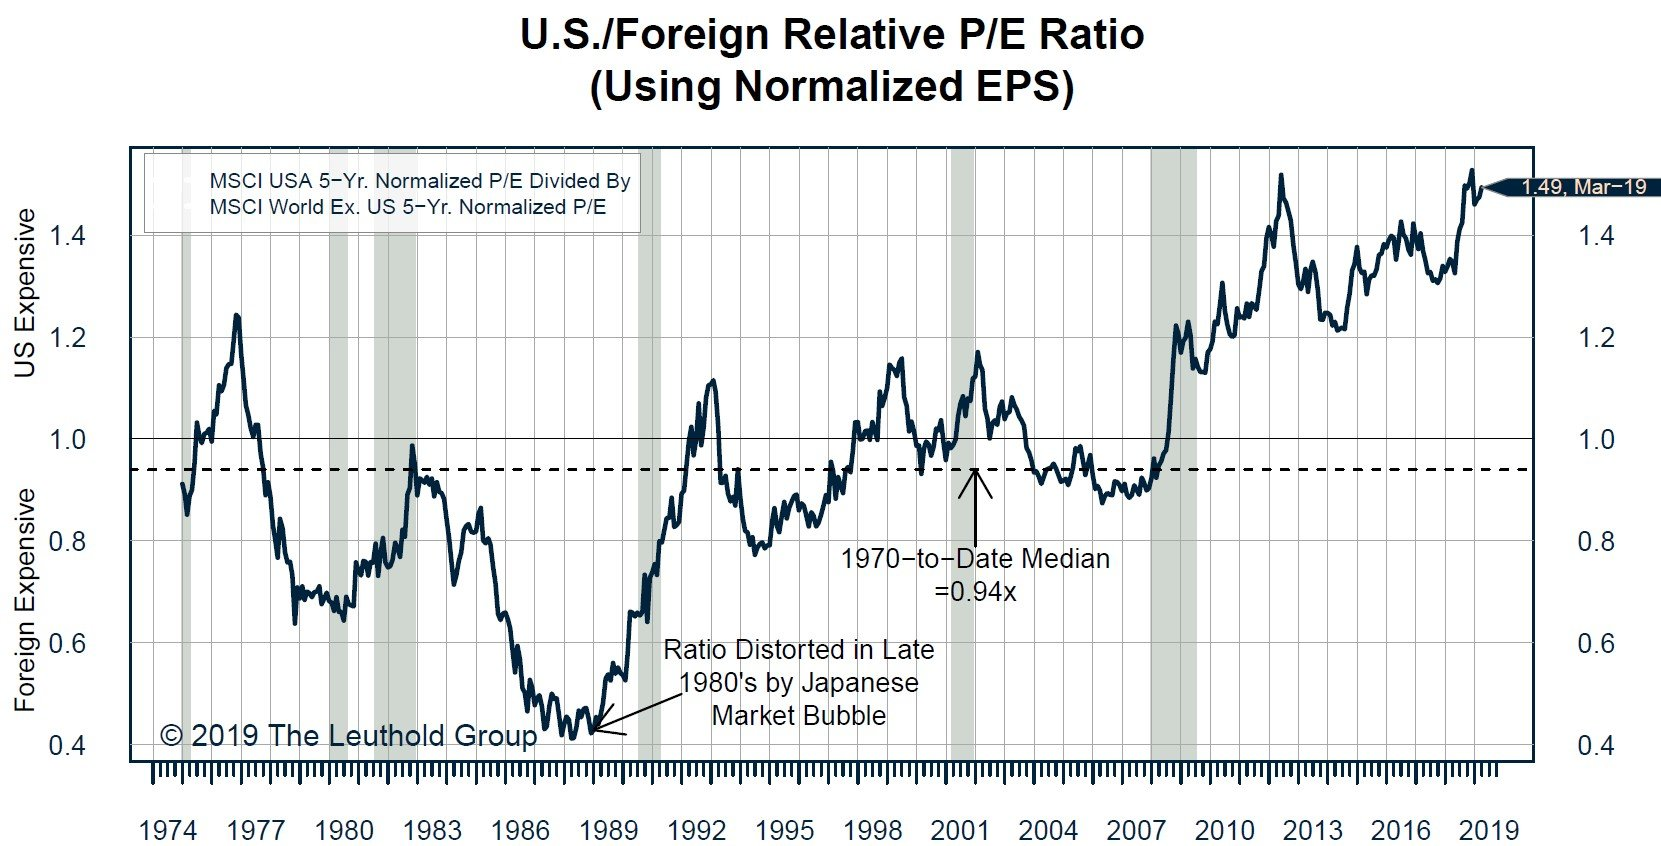 US/Foreign Relative P/E Ratio